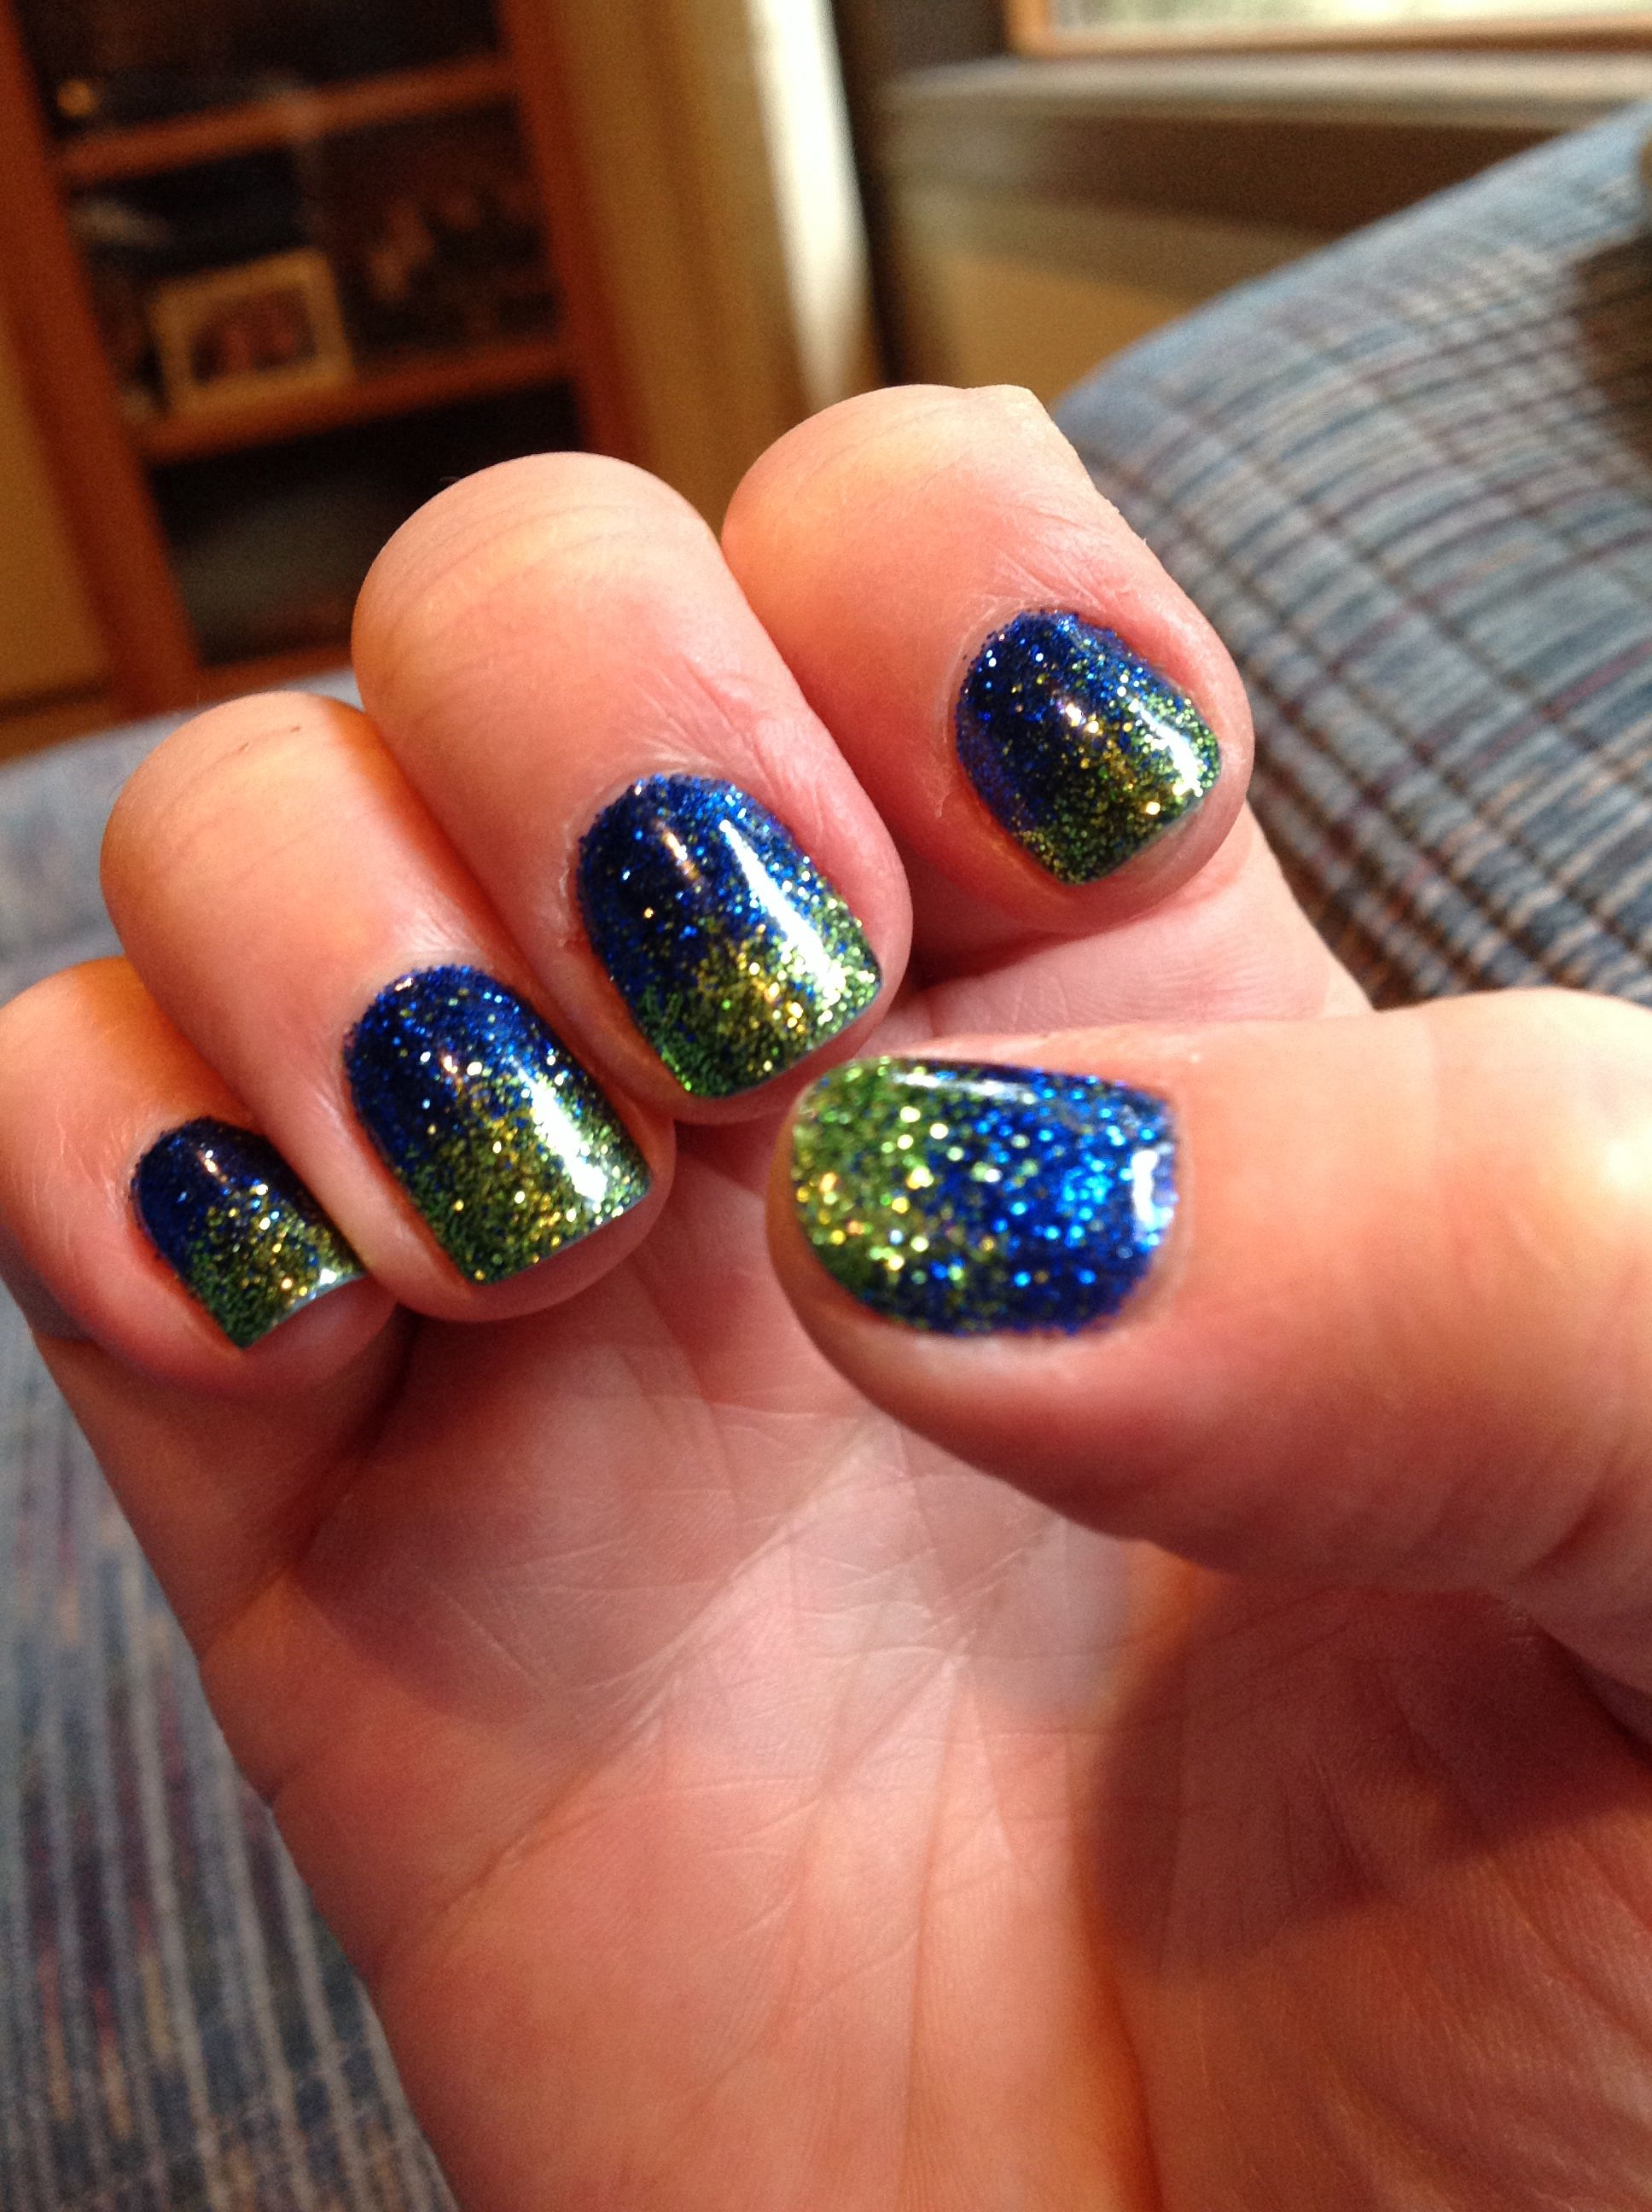 Seattle Seahawks Colors Shellac Nail Polish And Glitter By Mariana At Gene Juarez In Downtown I Highly Recommend